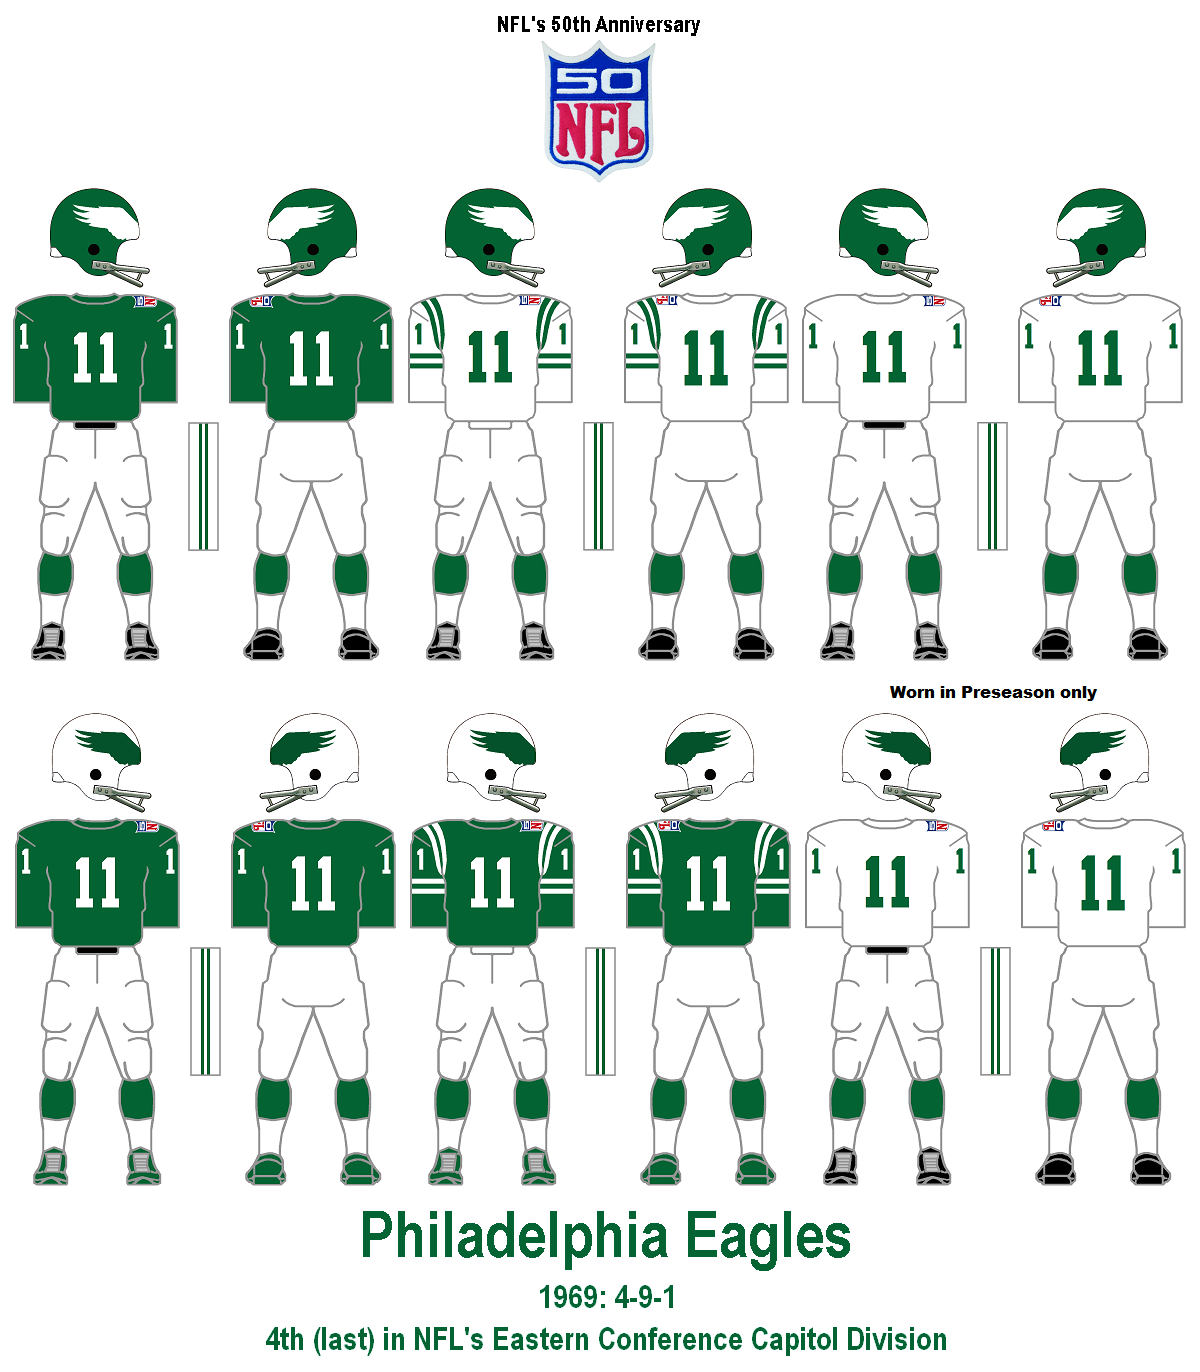 e06a8bee5bb Bill's Update Blog: 1960-69 Philadelphia Eagles